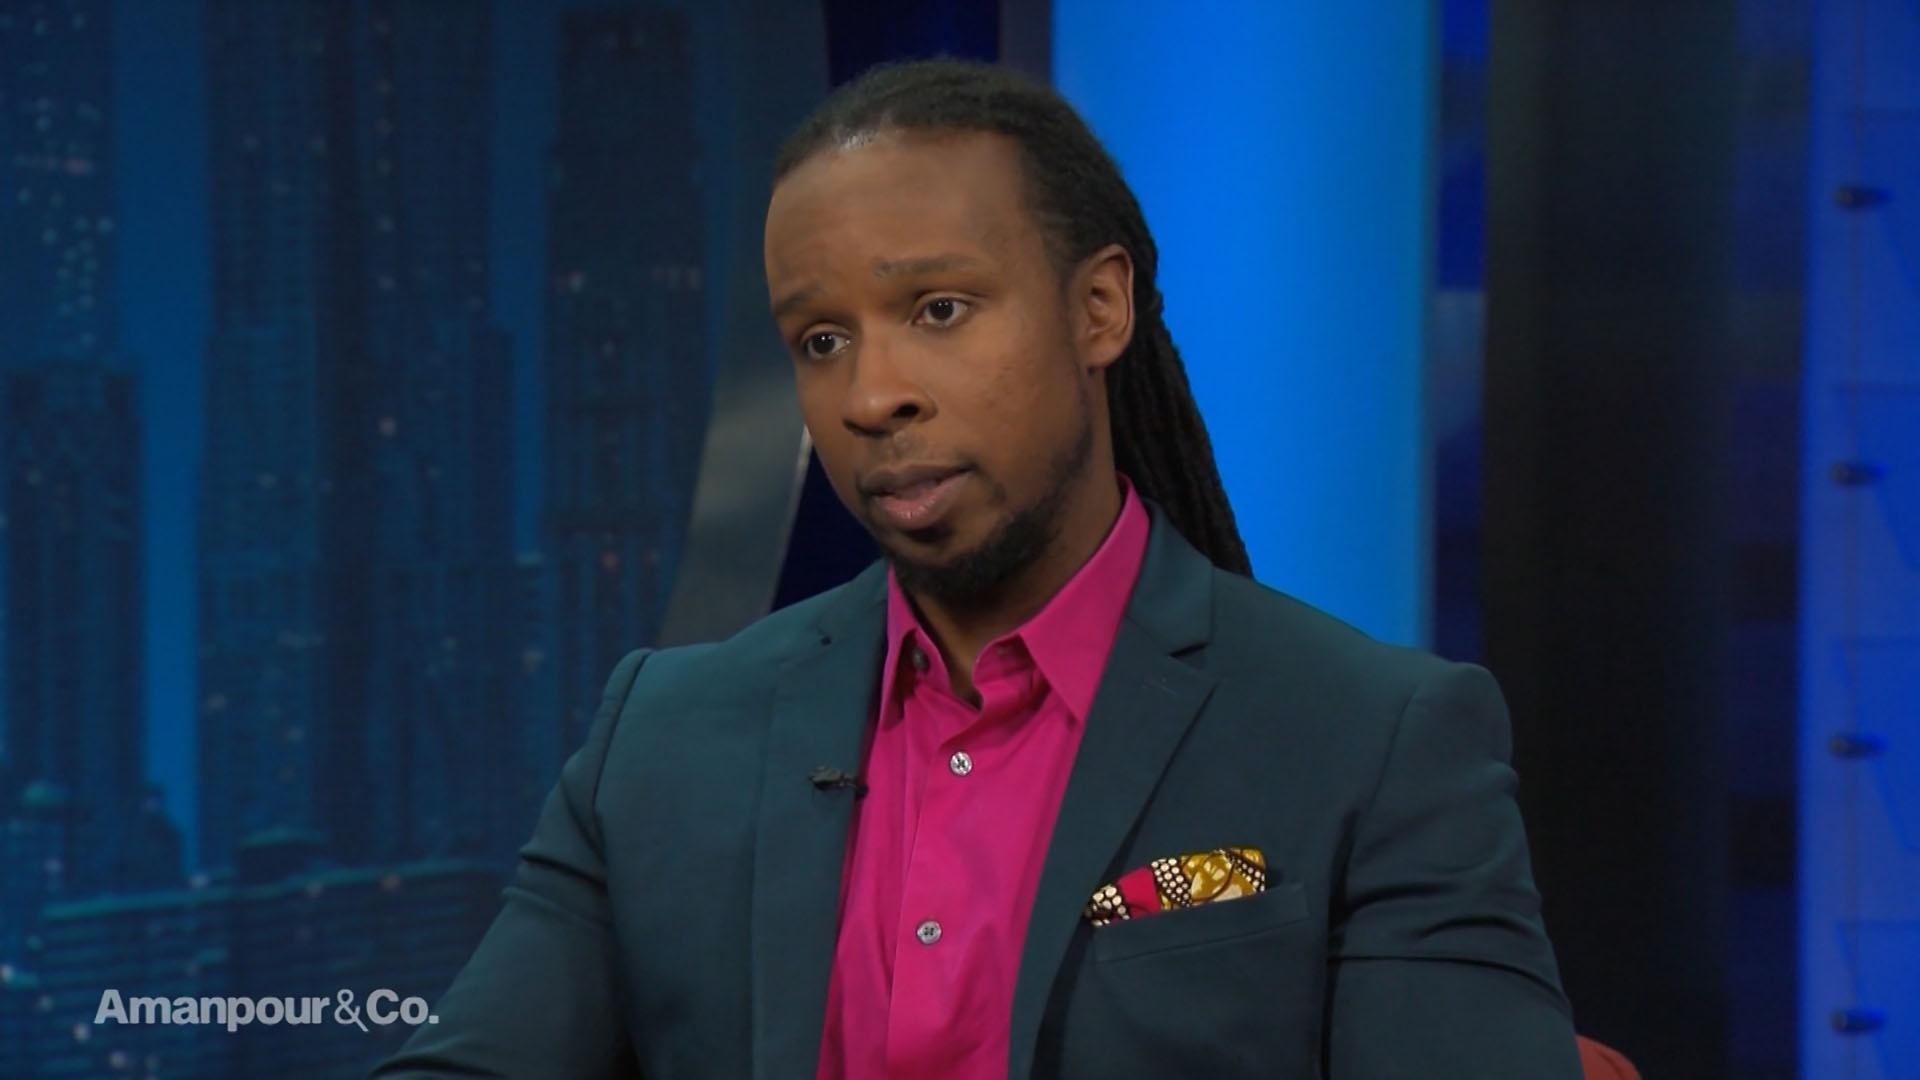 Amanpour and Company : Bestselling Author Ibram X. Kendi: How to Be an Antiracist